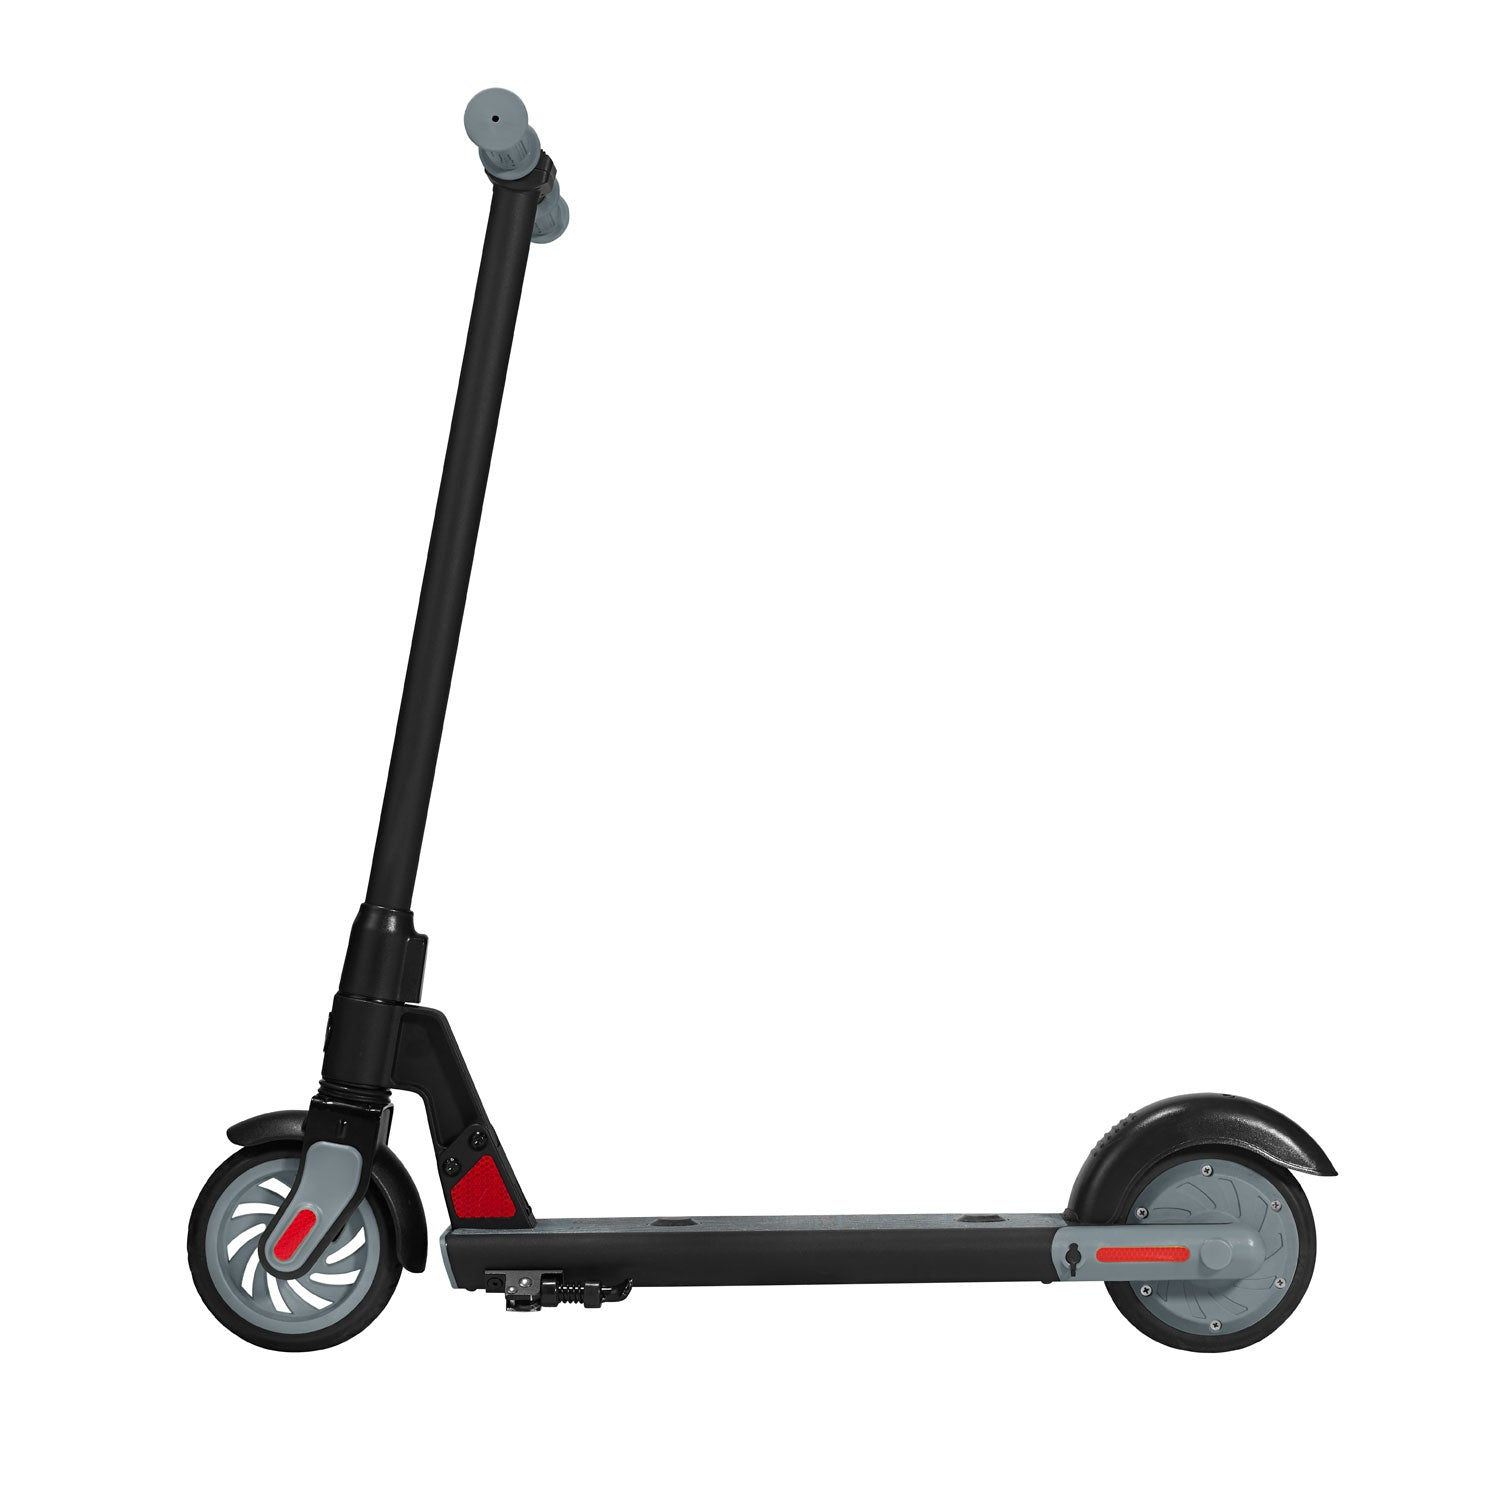 Black gks electric scooter for kids side image